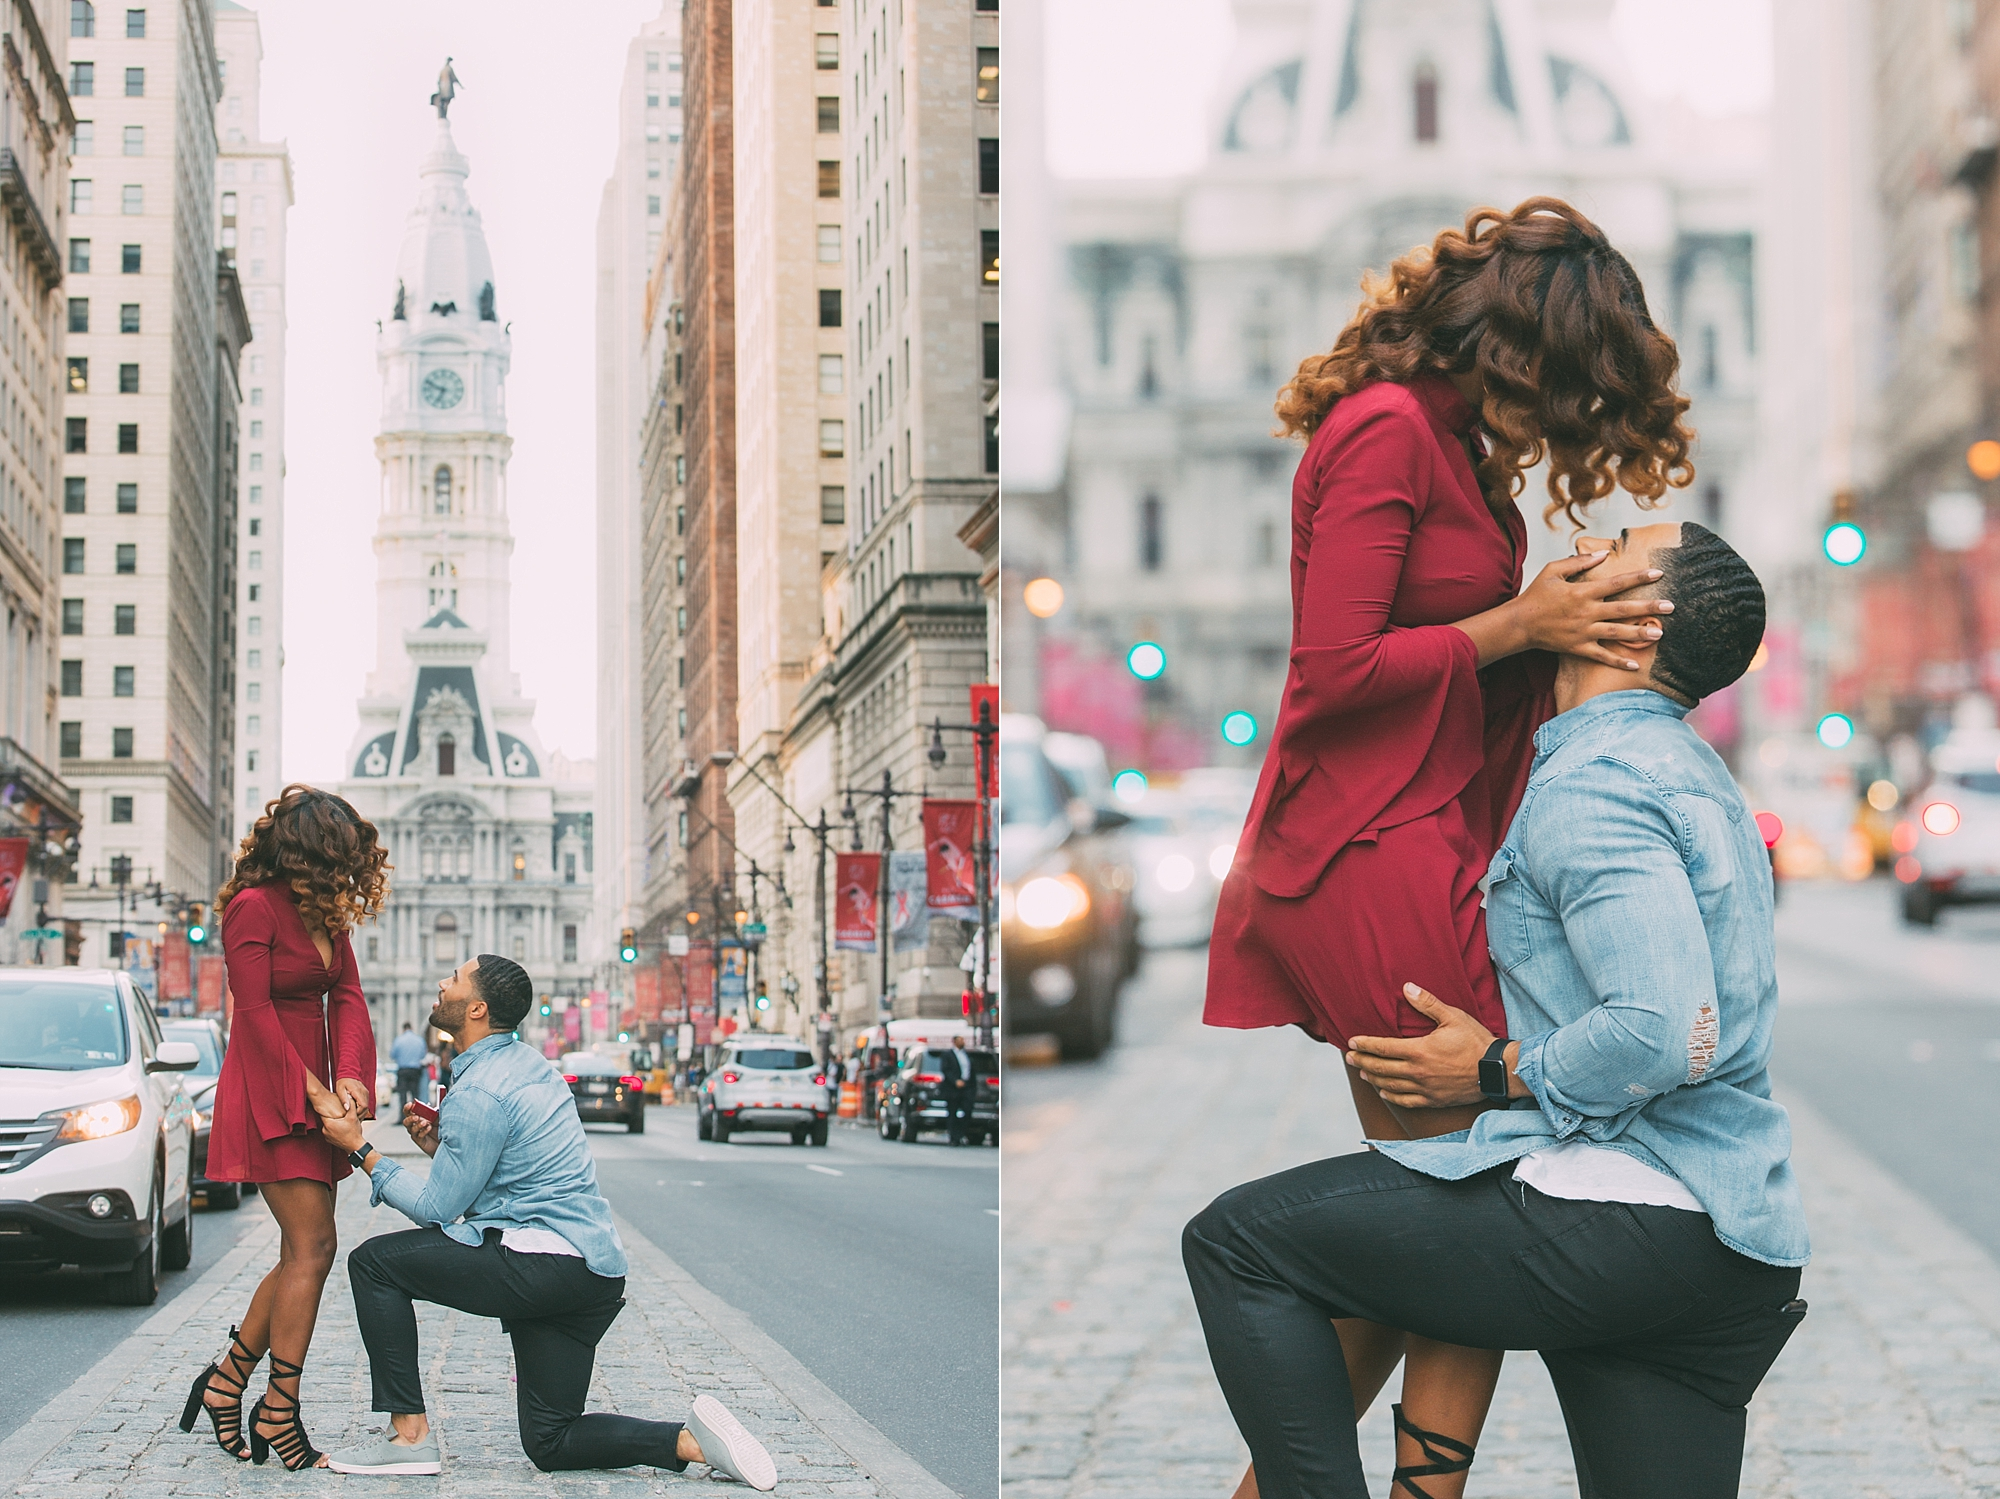 Joe_Mac_Creative_Wedding_Engagements_Photography_Philadelphia_Broad_Street_Proposal_0008.jpg